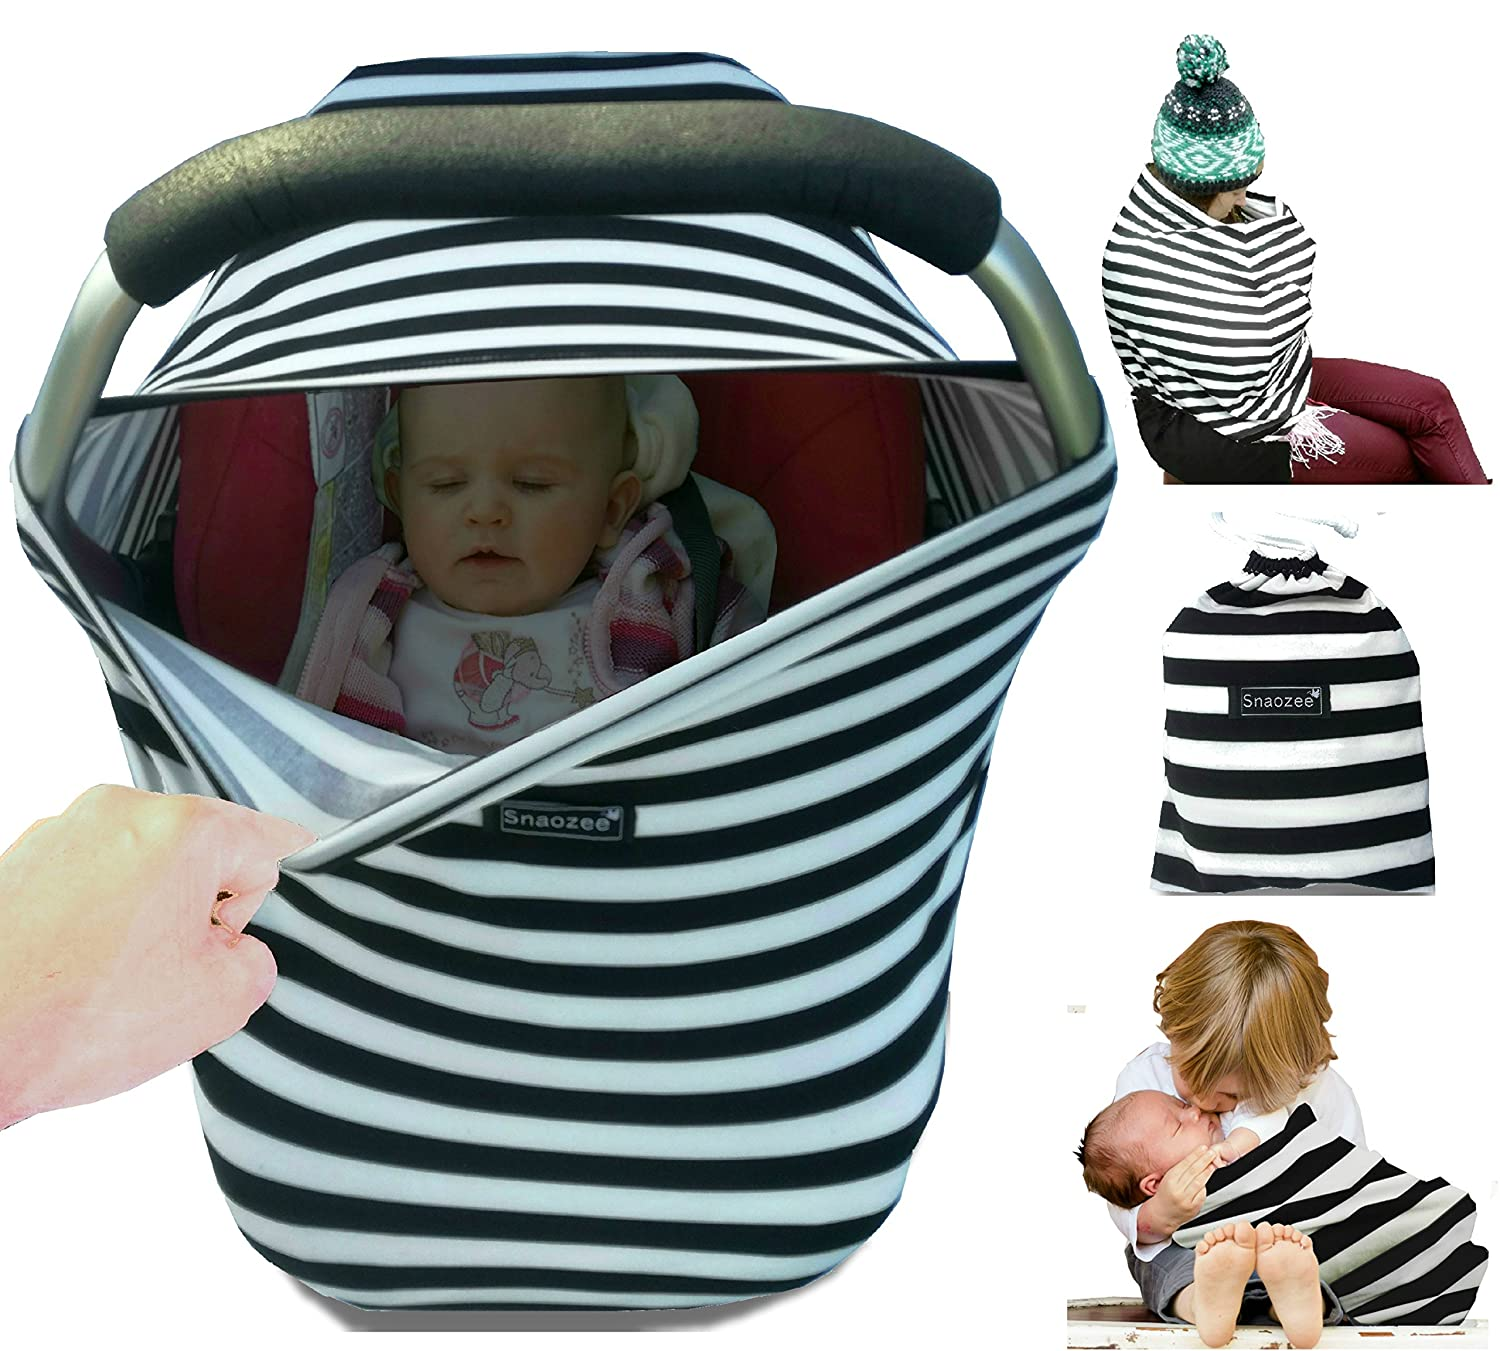 Snaozee Multi-use Nursing Cover & Baby Car Seat Canopy Best forBreastfeeding | Shopping Cart | Stroller - Premium Soft | Breathable | Stretchy | Unisex (free carry pouch) PM1001